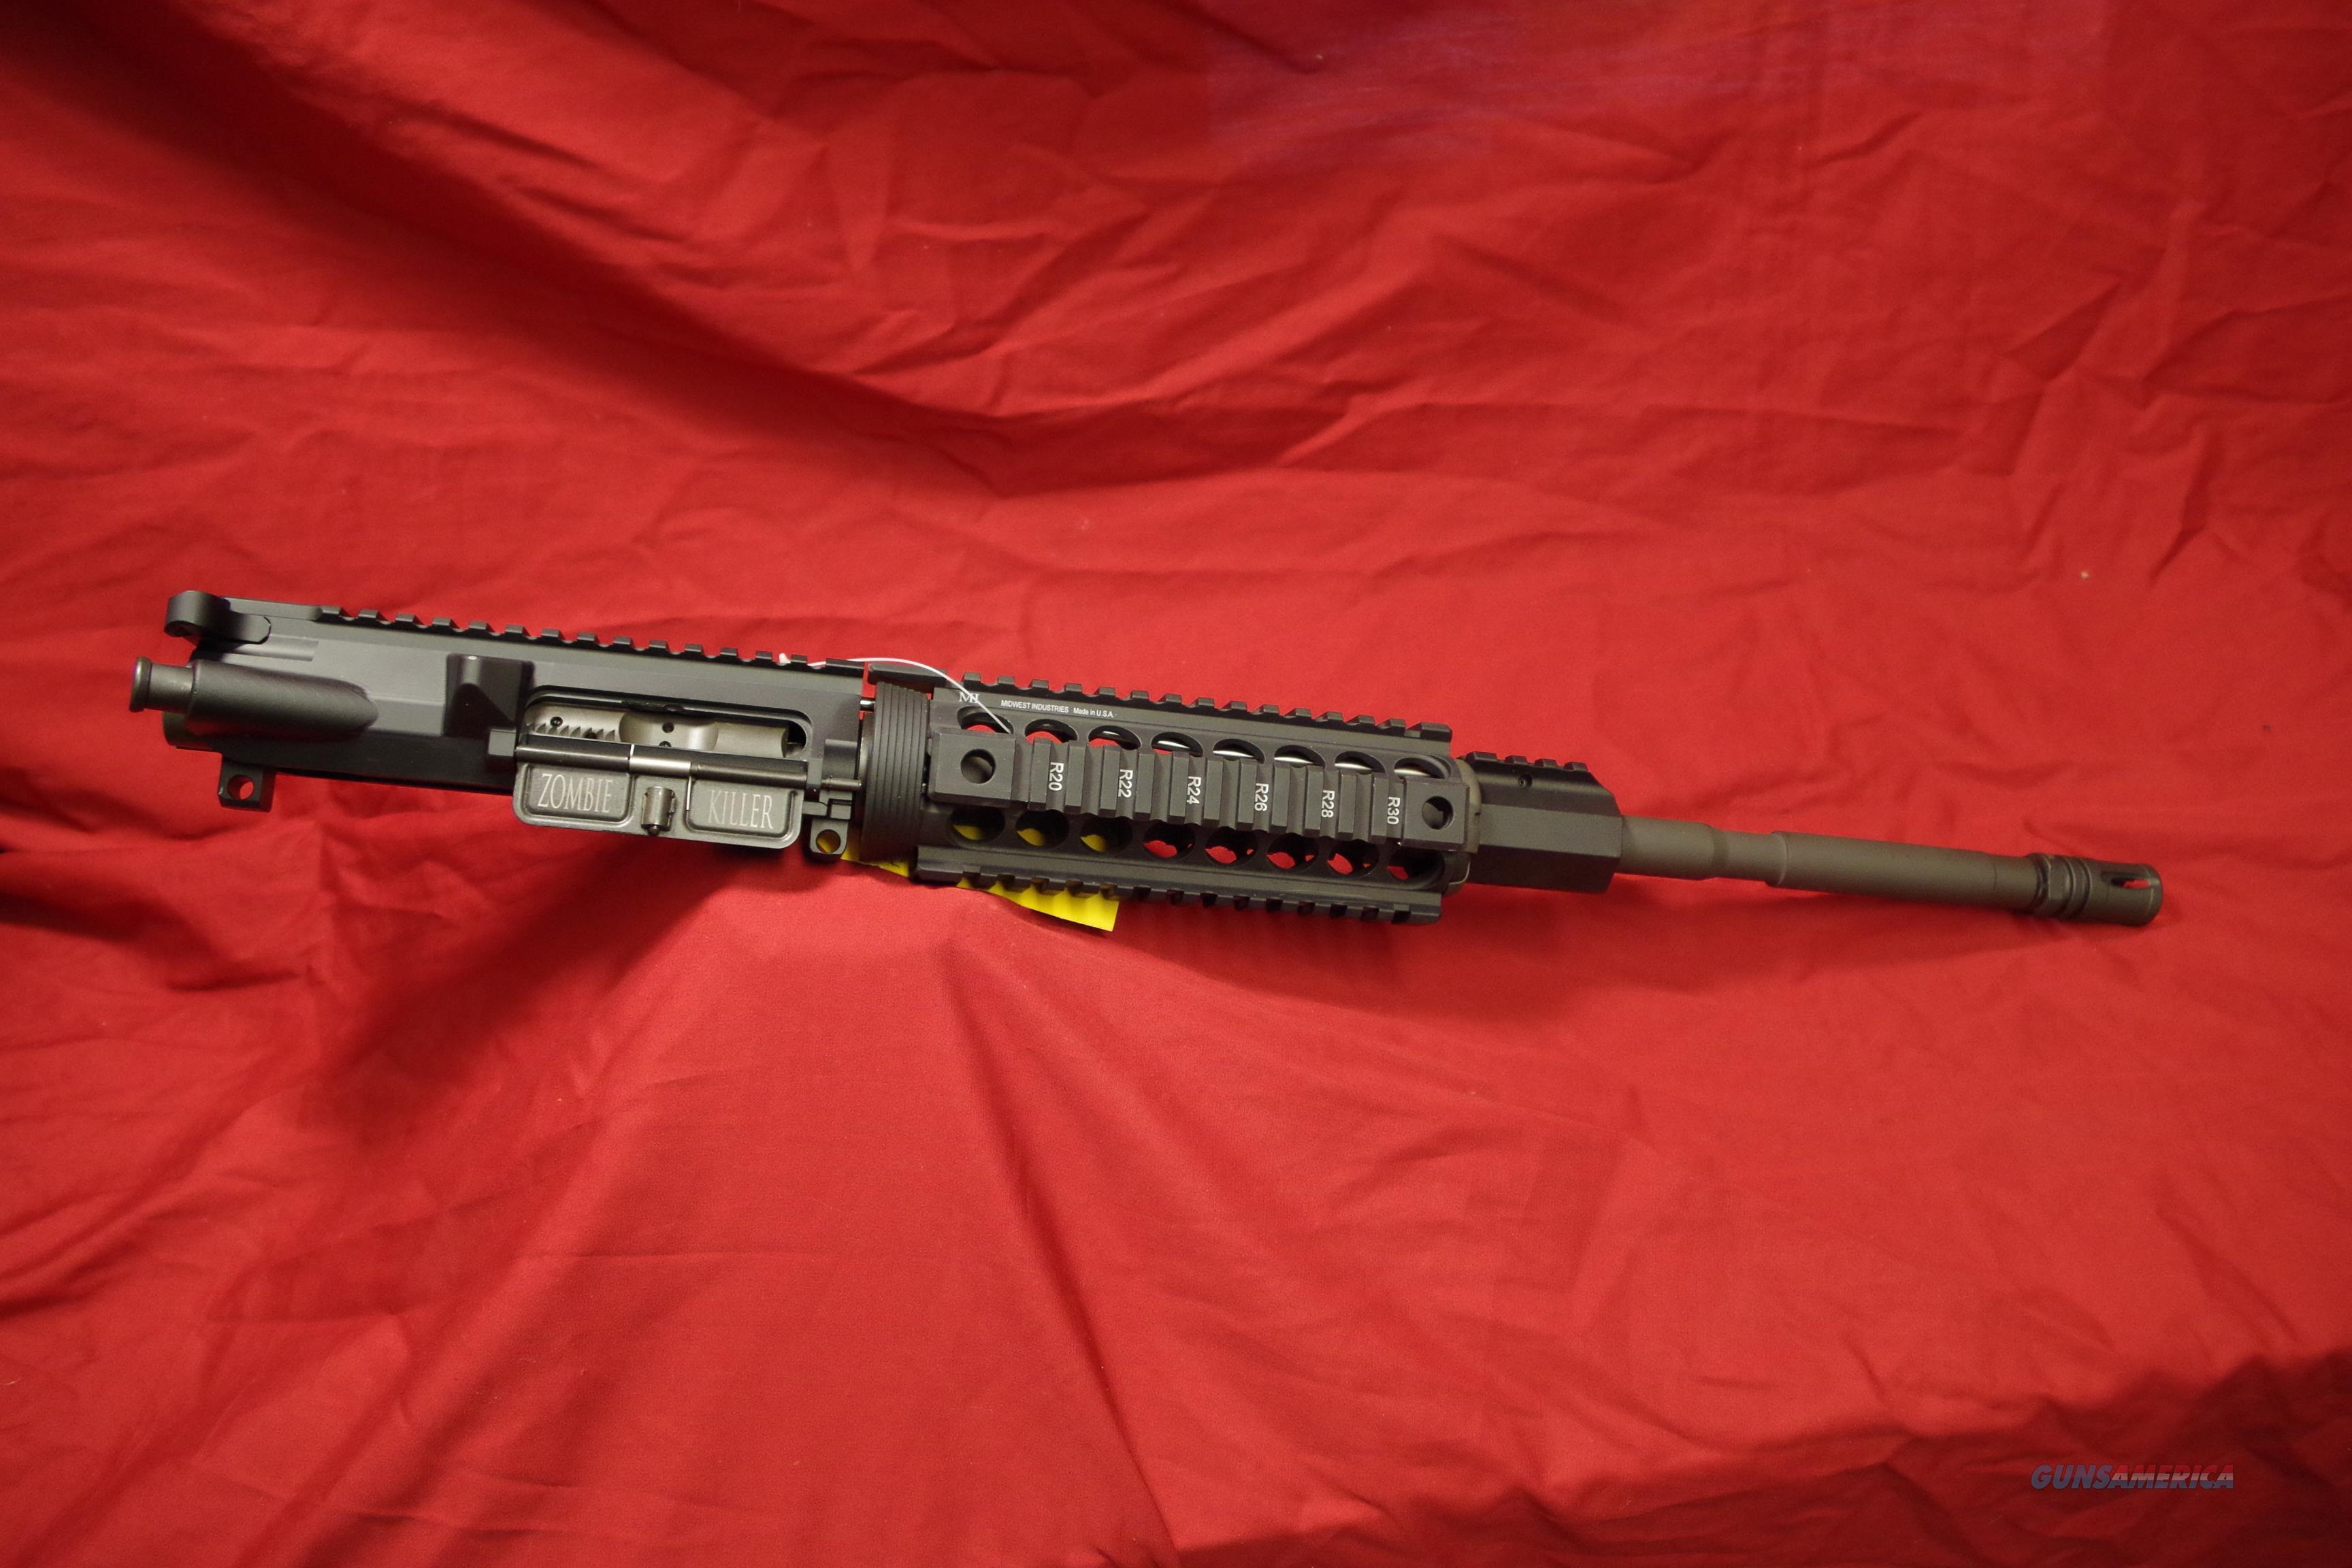 5.56  cal. Palmetto 1/7 barrel, Palmetto BCG and MI bilet upper  Non-Guns > Barrels